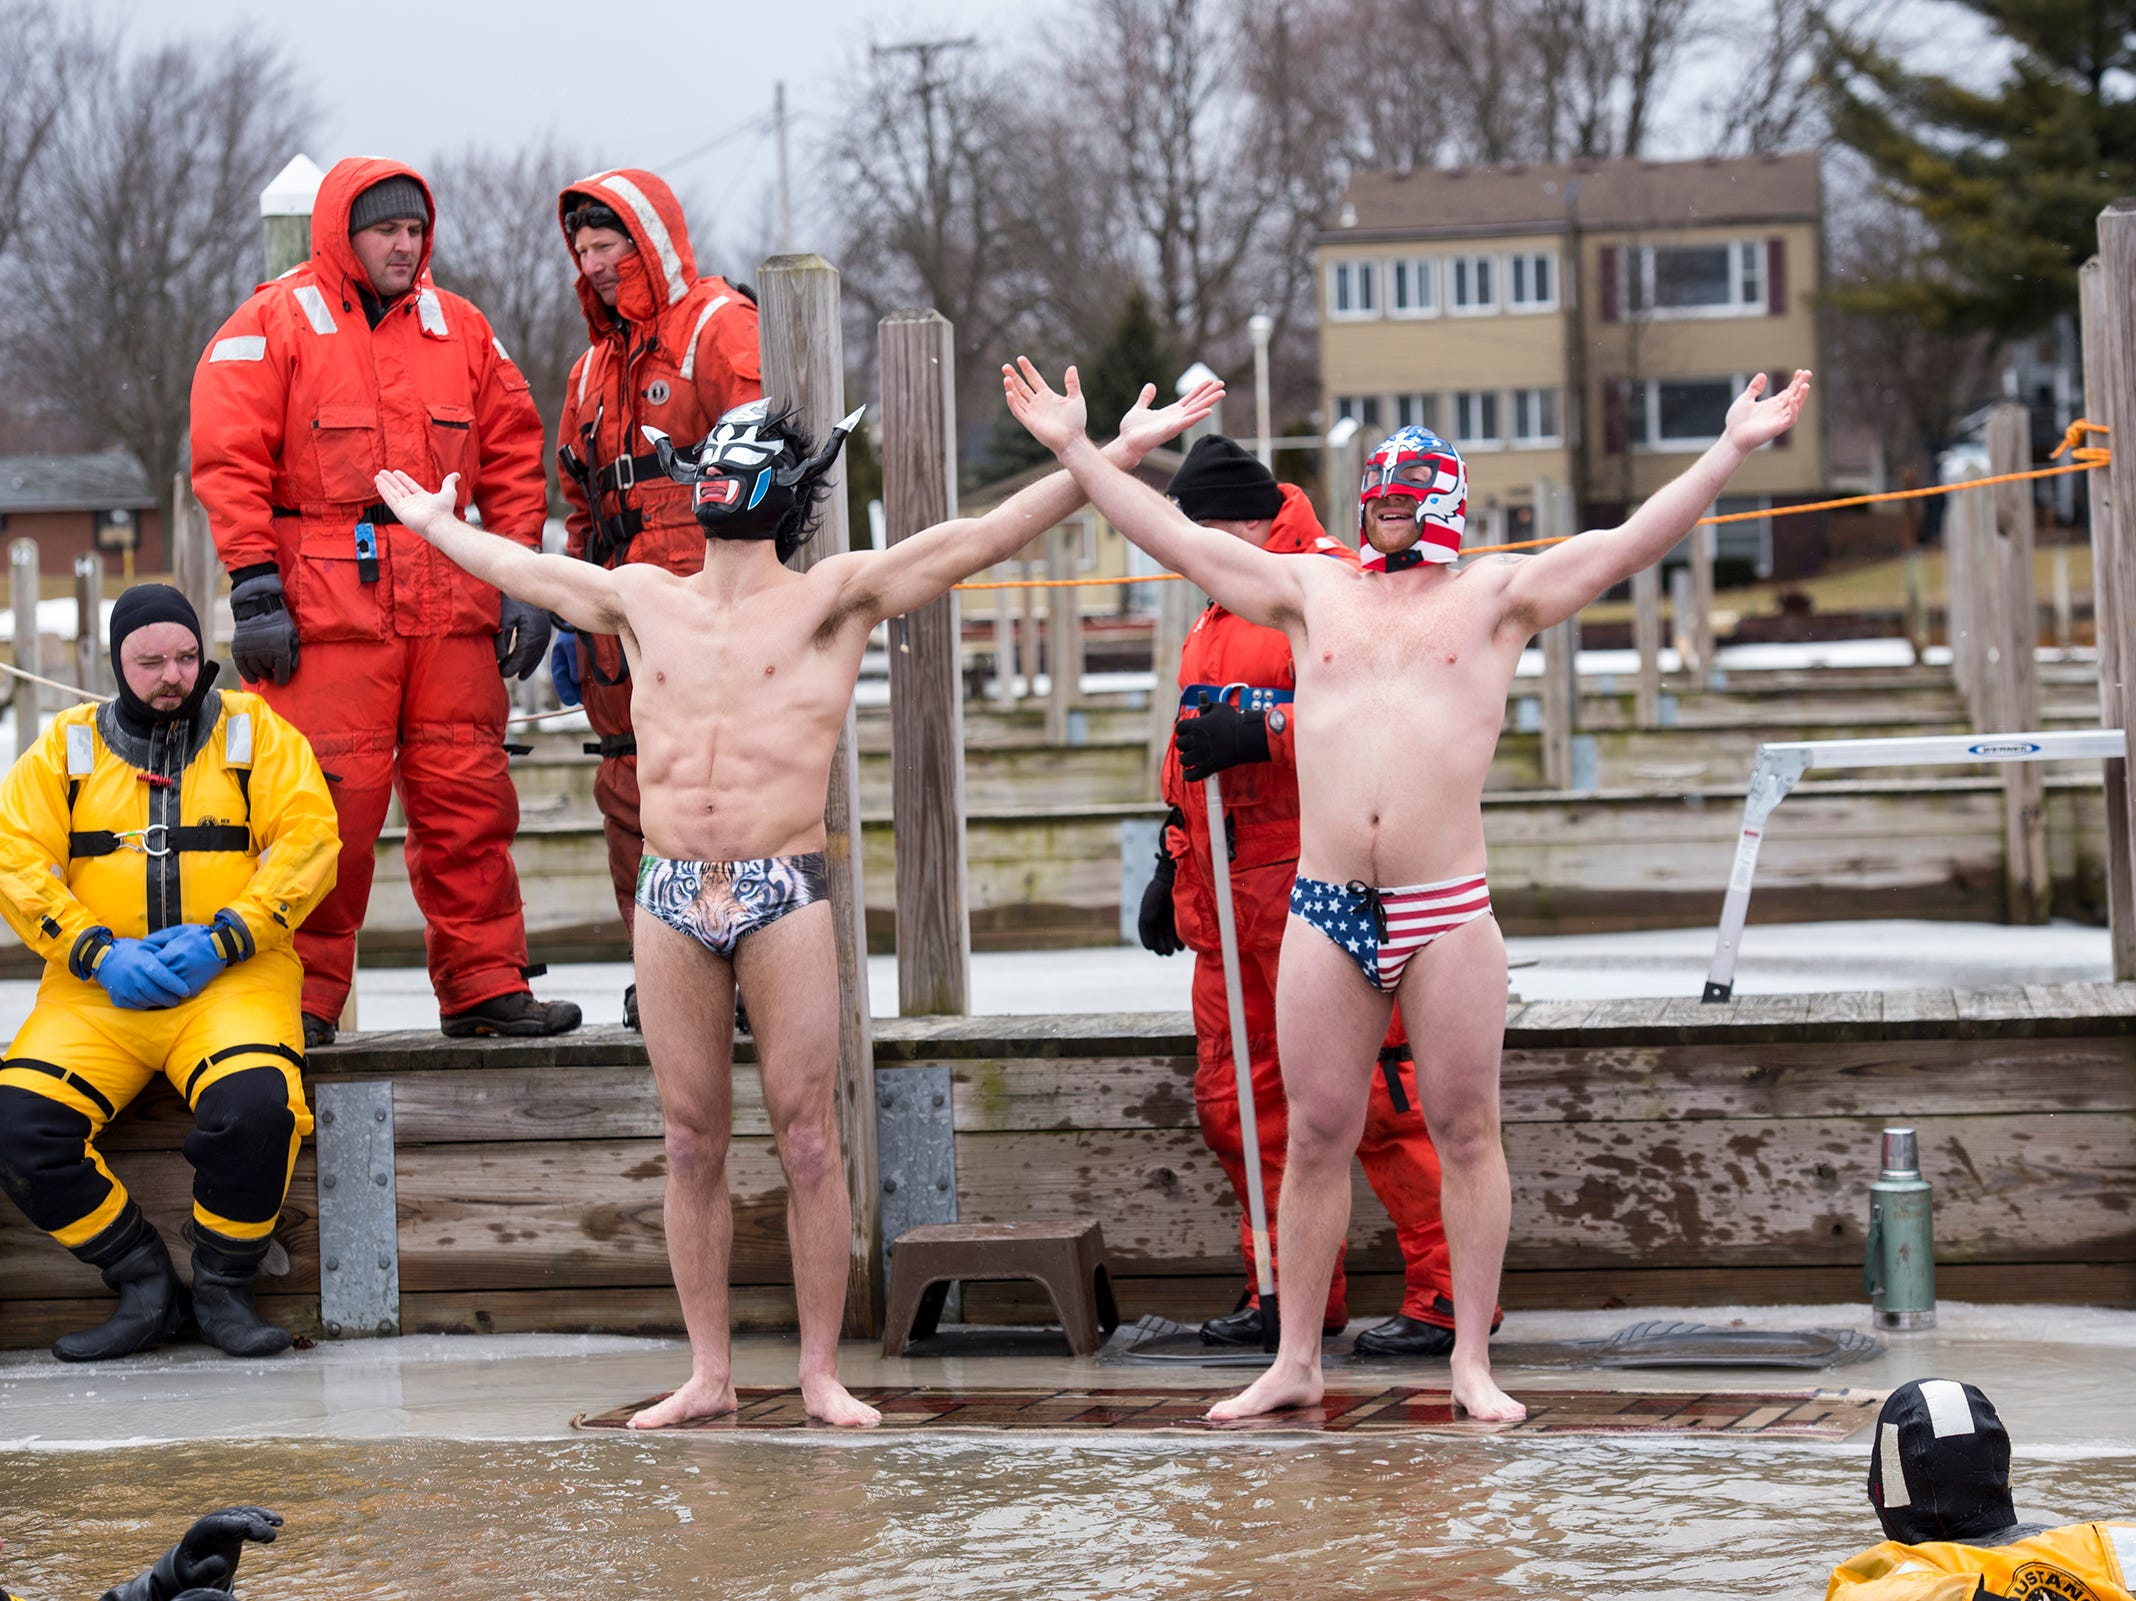 Sergio Hernandez, left, and Ryan Teeple strike a pose before they jump through the ice into the water in the St. Clair Boat Harbor Sunday, Feb. 24, 2019 during the annual St. Clair Polar Plunge. This was Hernandez's fourth plunge and Teeple's first.